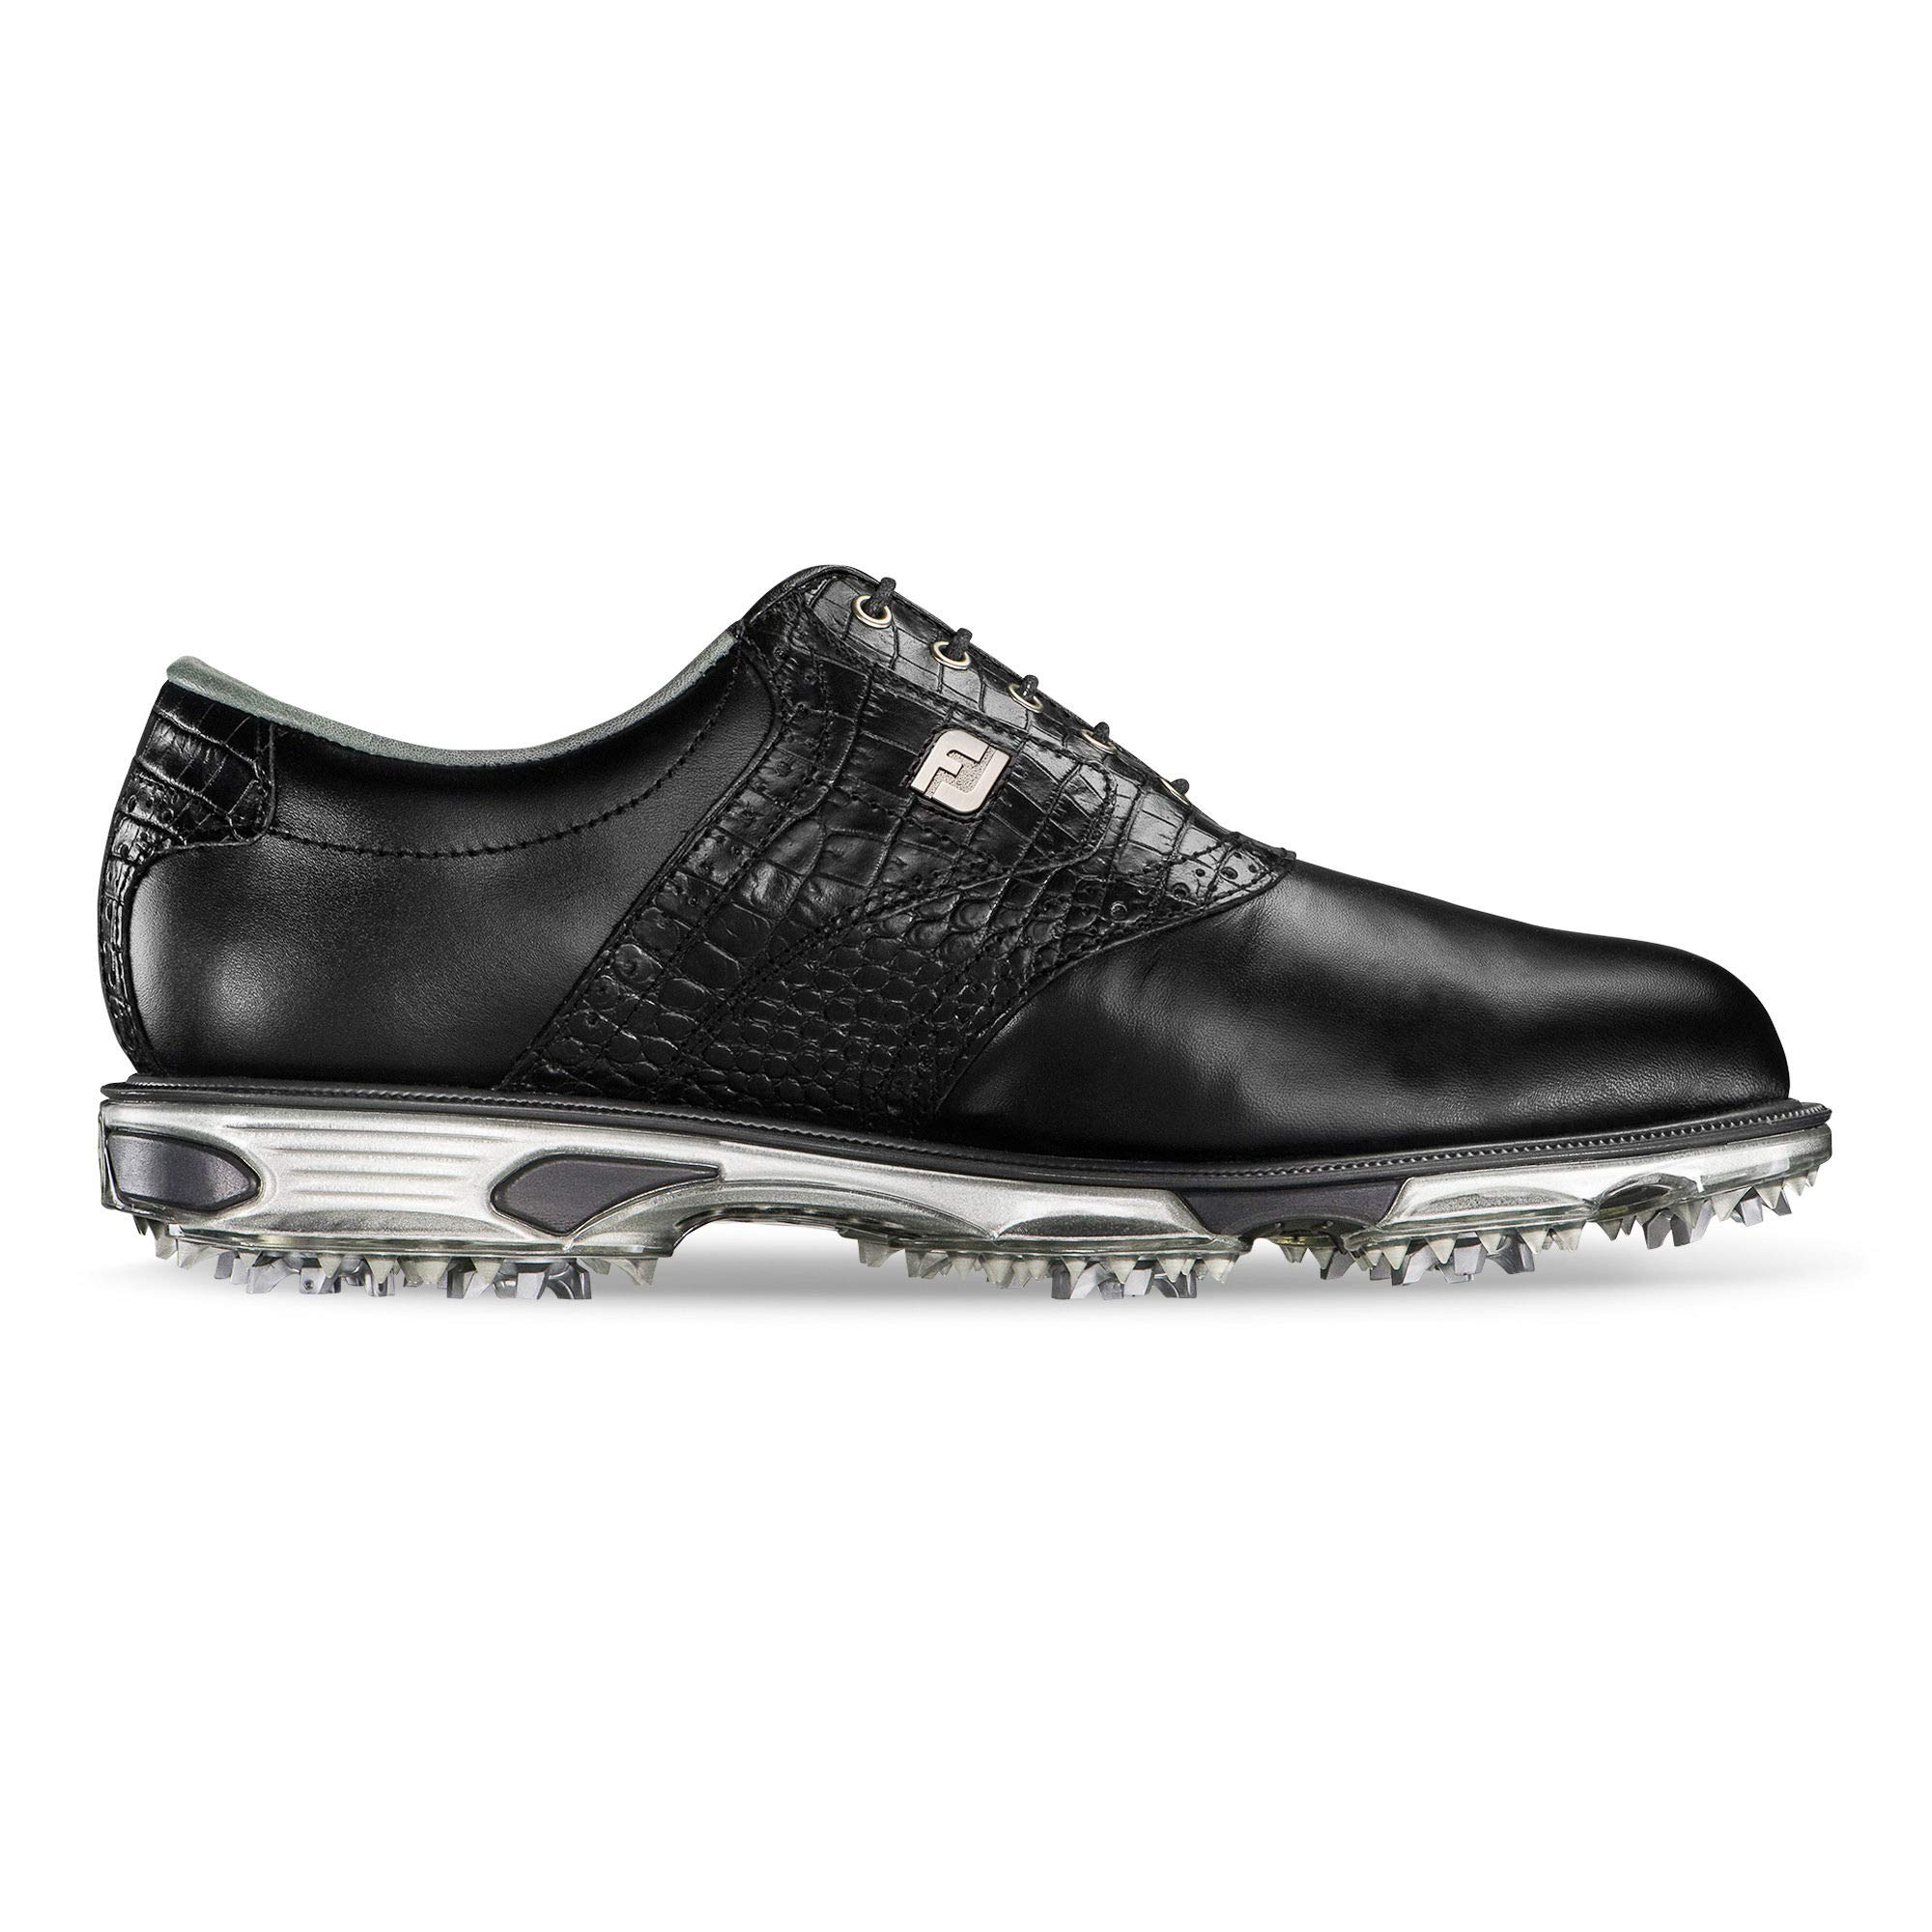 FootJoy Men's DryJoys Tour Golf Shoes Black 13 W Croc, US by FootJoy